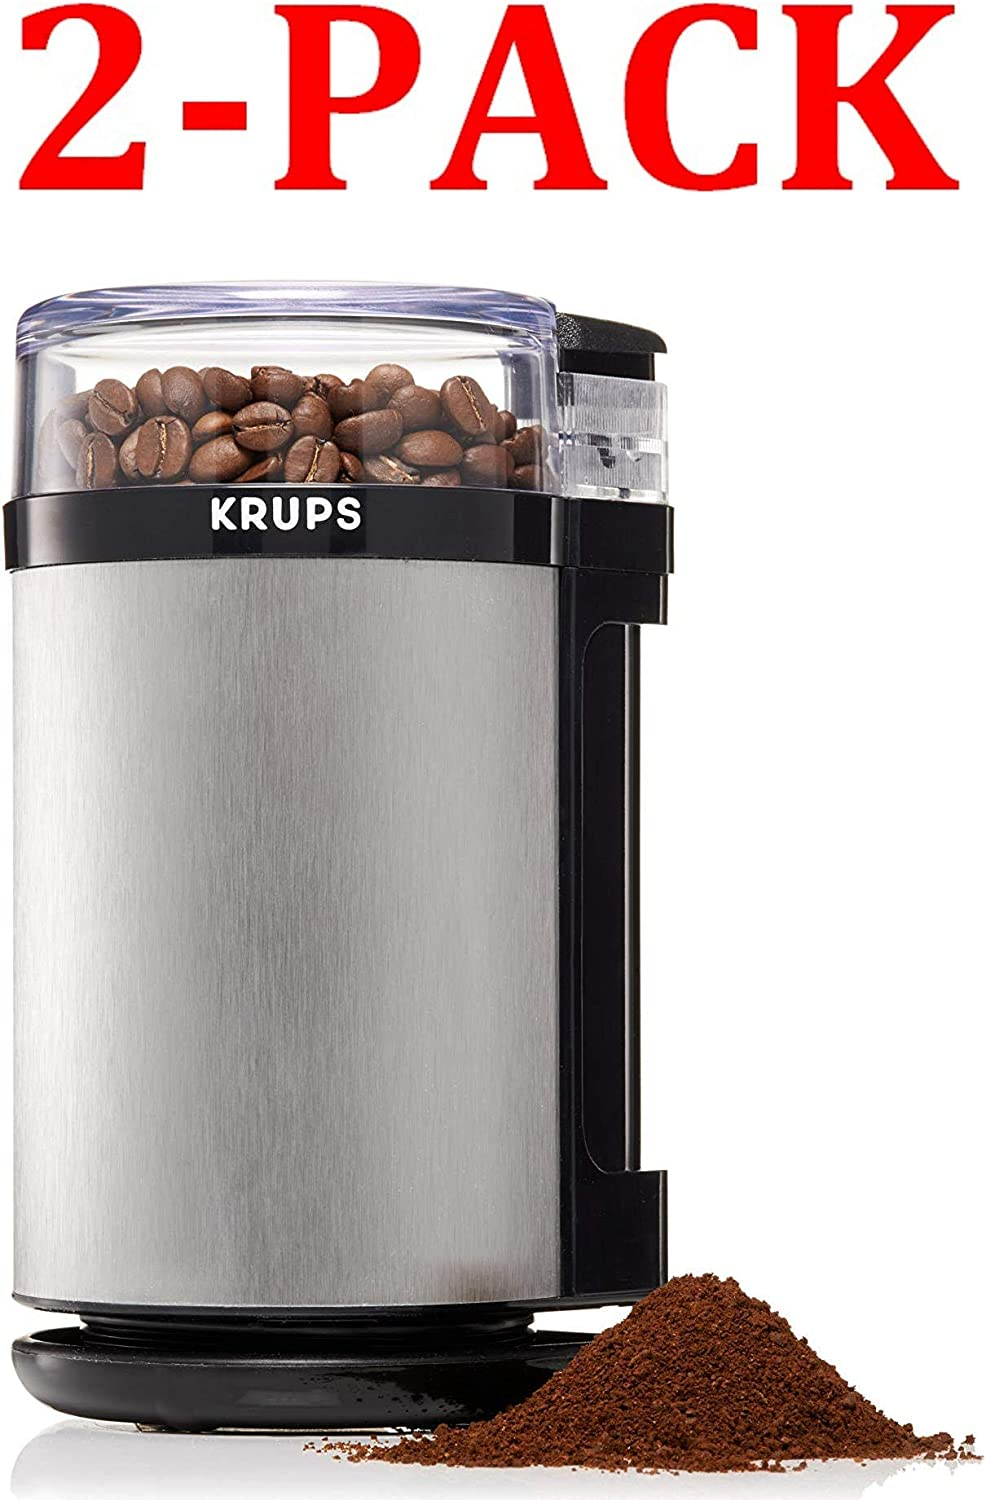 KRUPS GX4100 Electric Spice Herbs and Coffee Grinder with Stainless Steel Blades and Housing, 3-Ounce, Gray 3-Ounce, 2-Pack